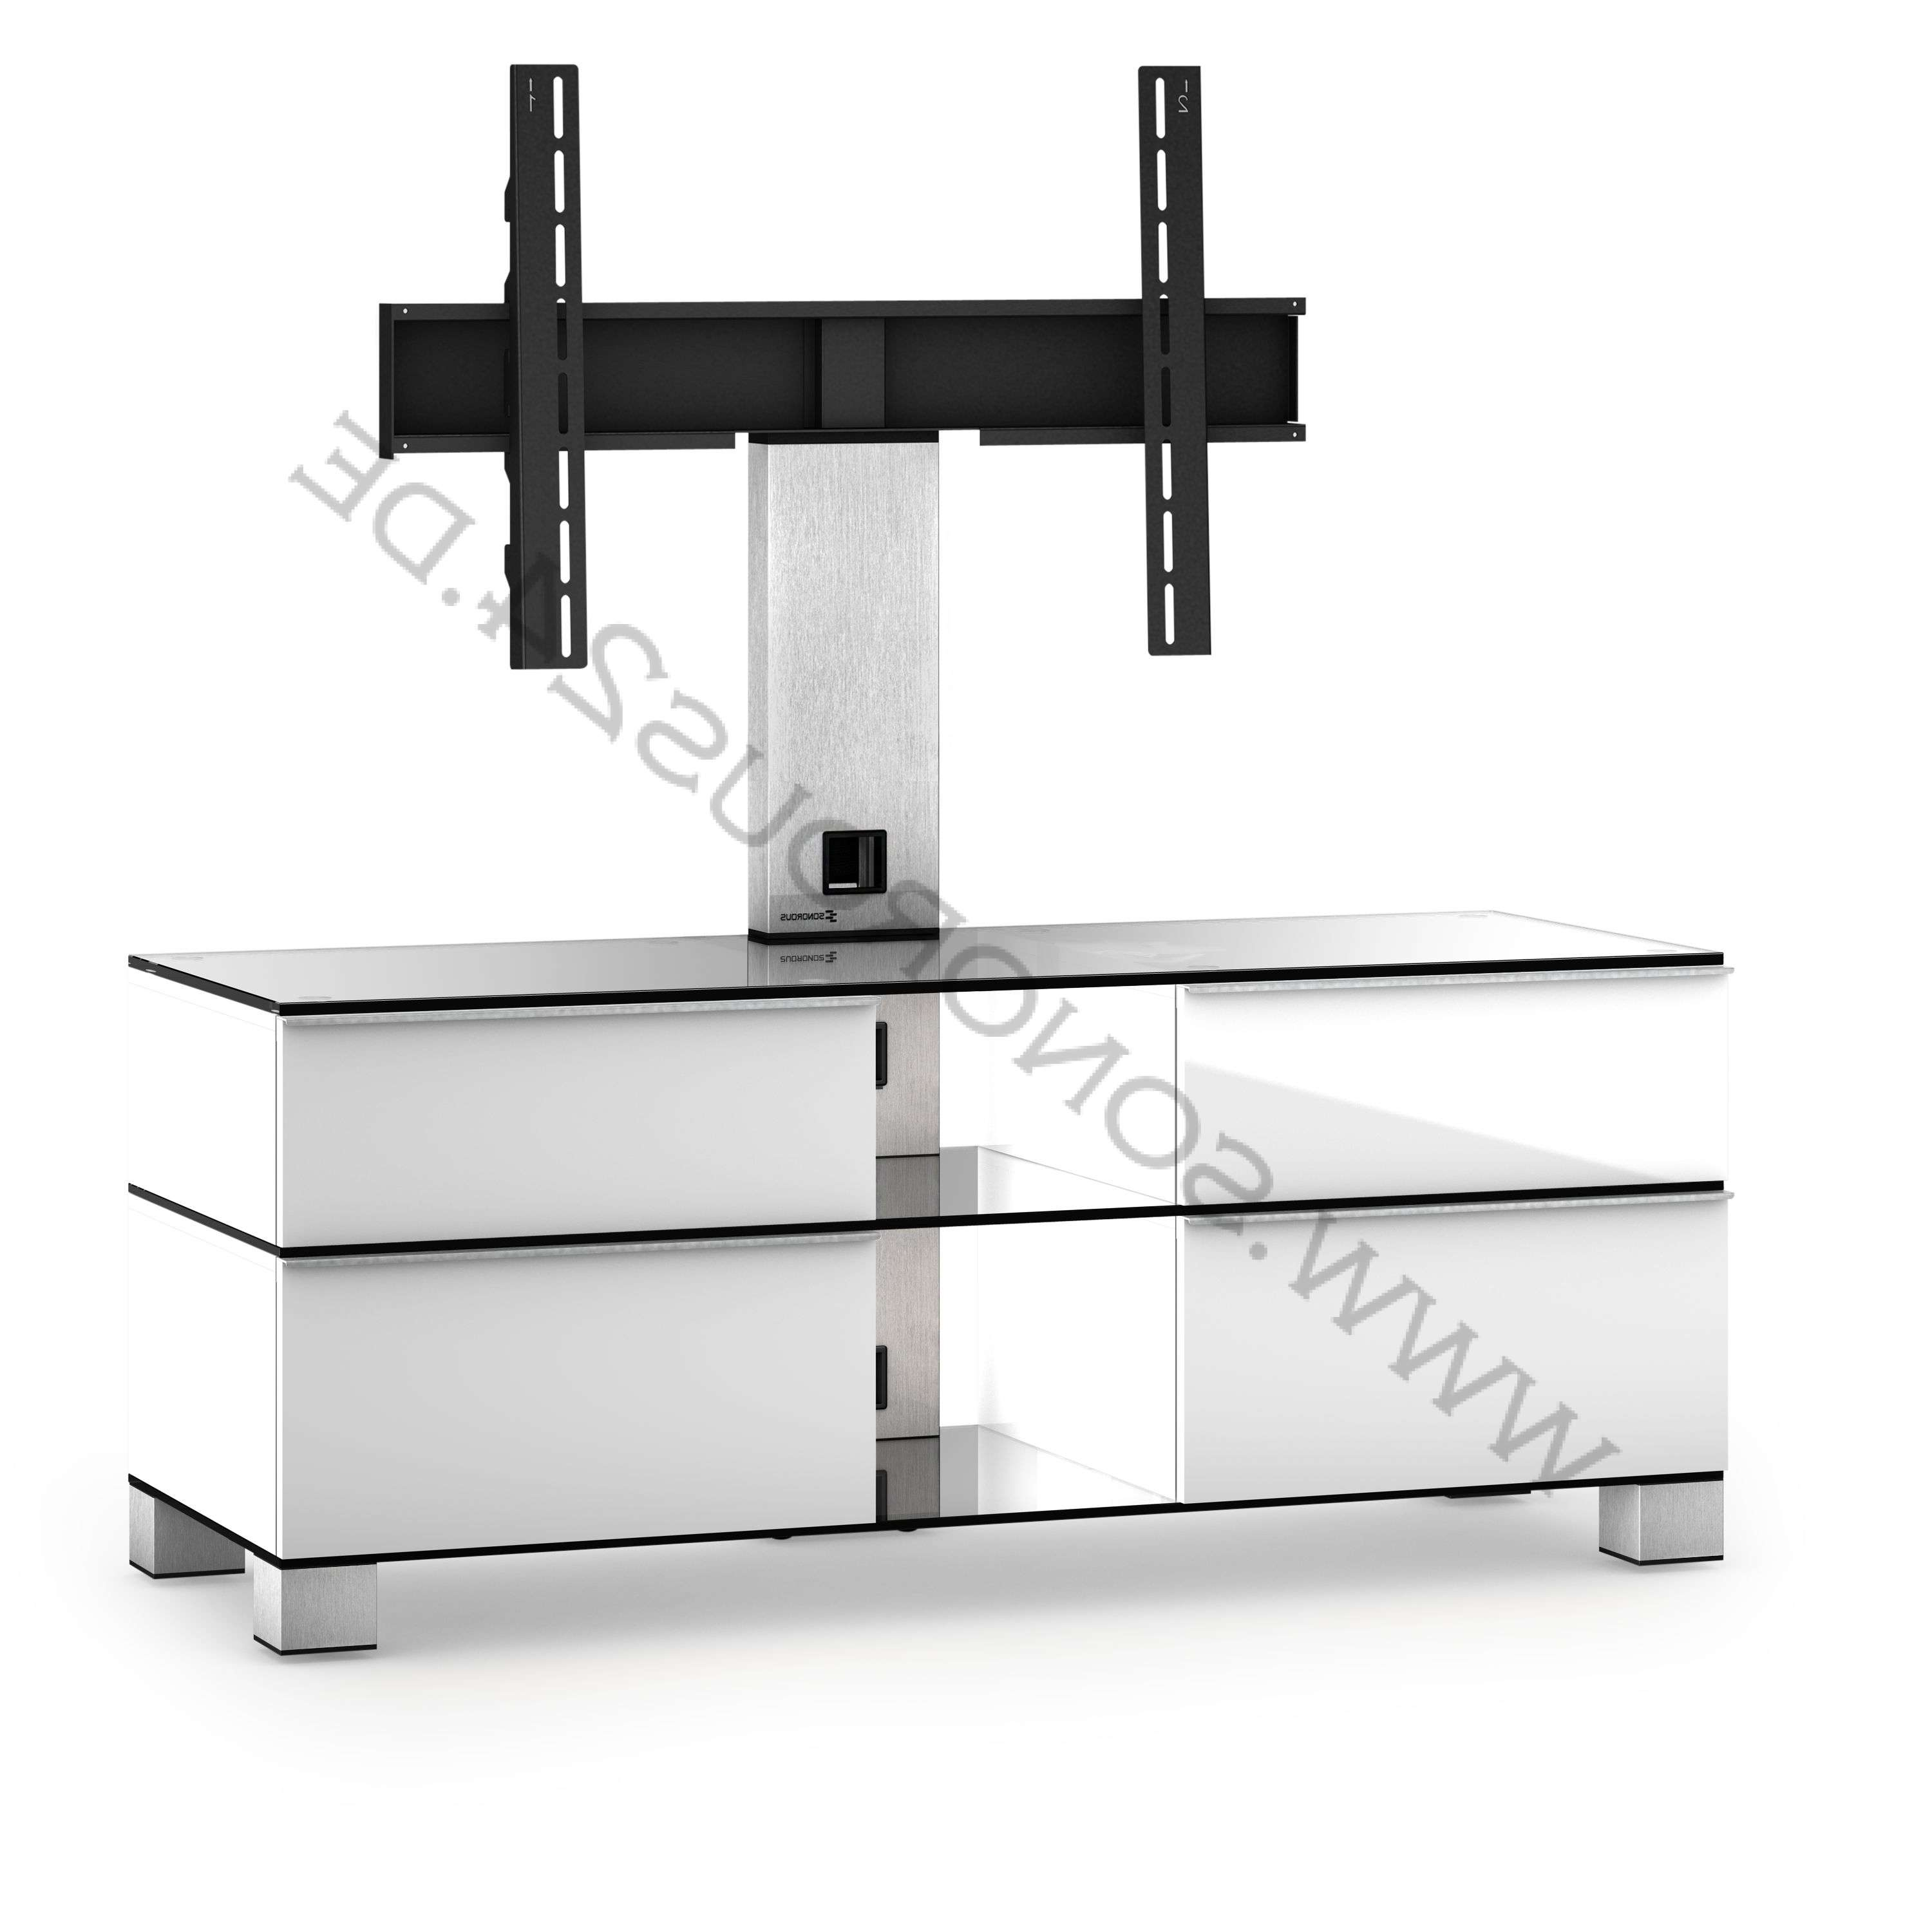 Sonorous Tv Rack, Tv 50 Inch – Sonorous – Md 8220 C Inx Wht Md With Regard To Sonorous Tv Cabinets (View 20 of 20)